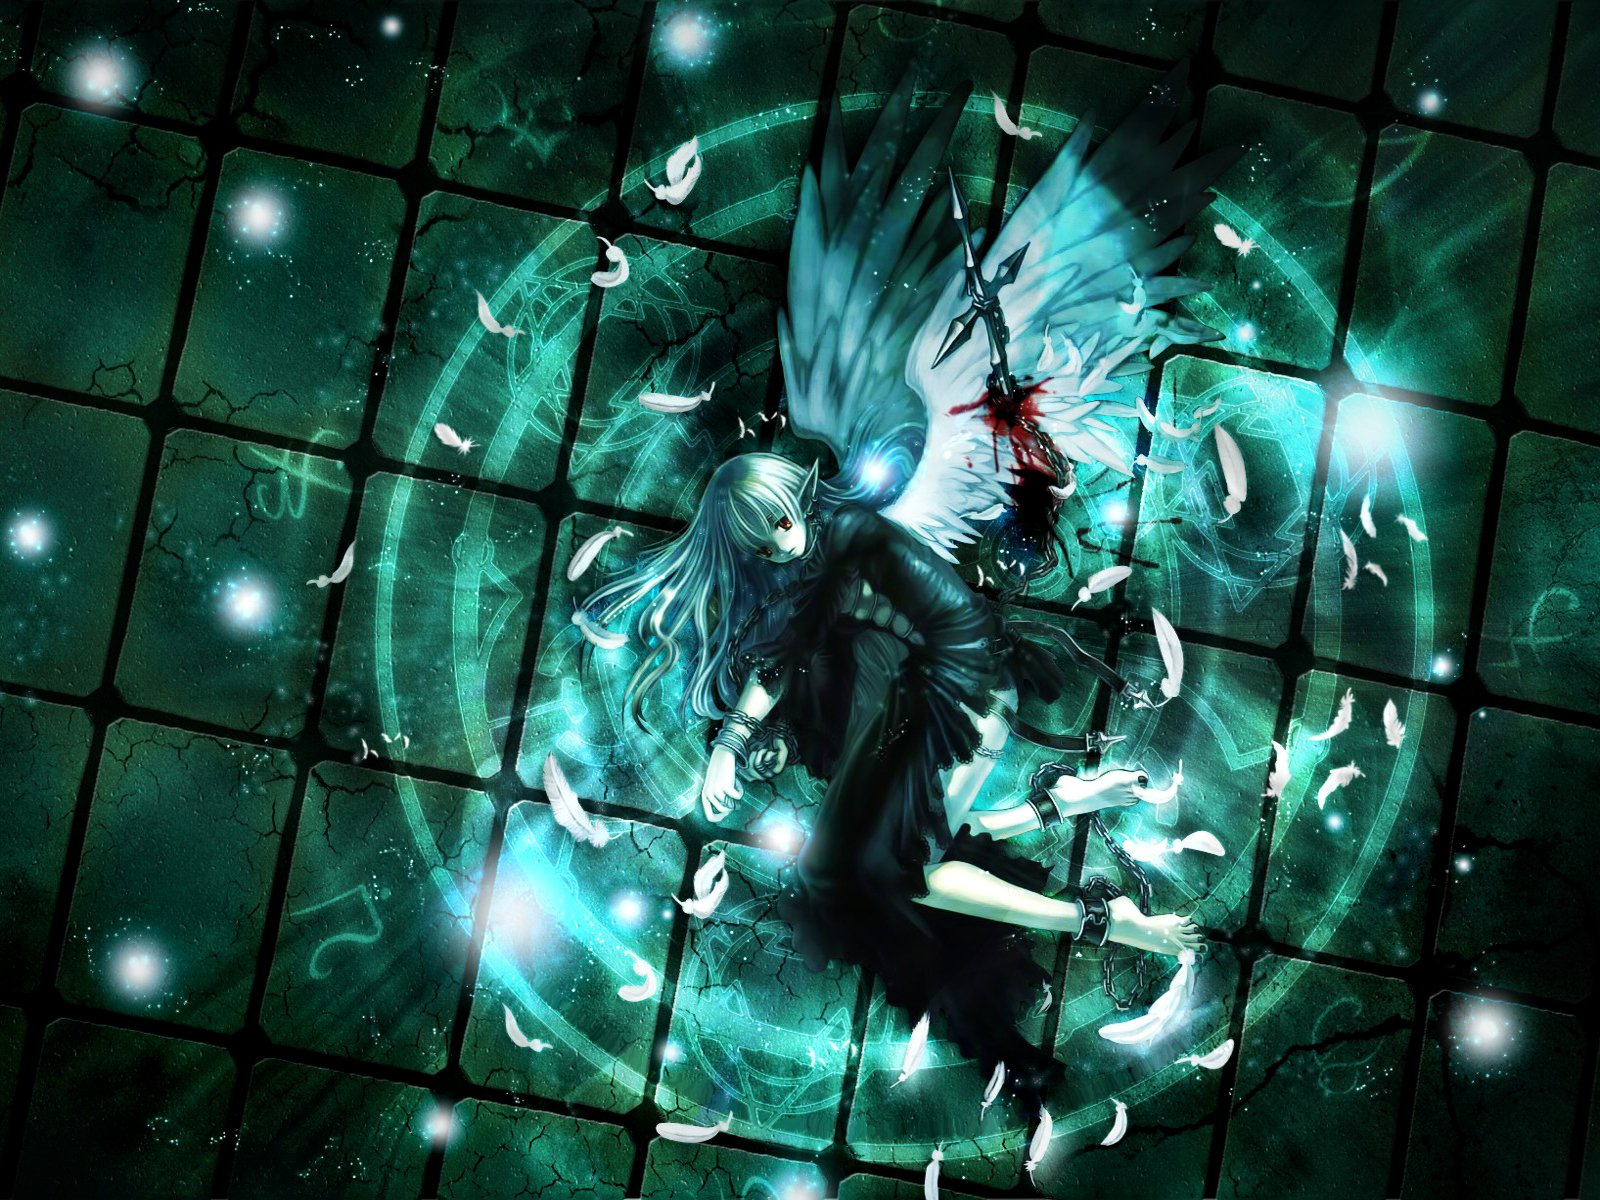 Anime - Originale  Oscuri Piume Wings Fallen Angel Anime Sfondo